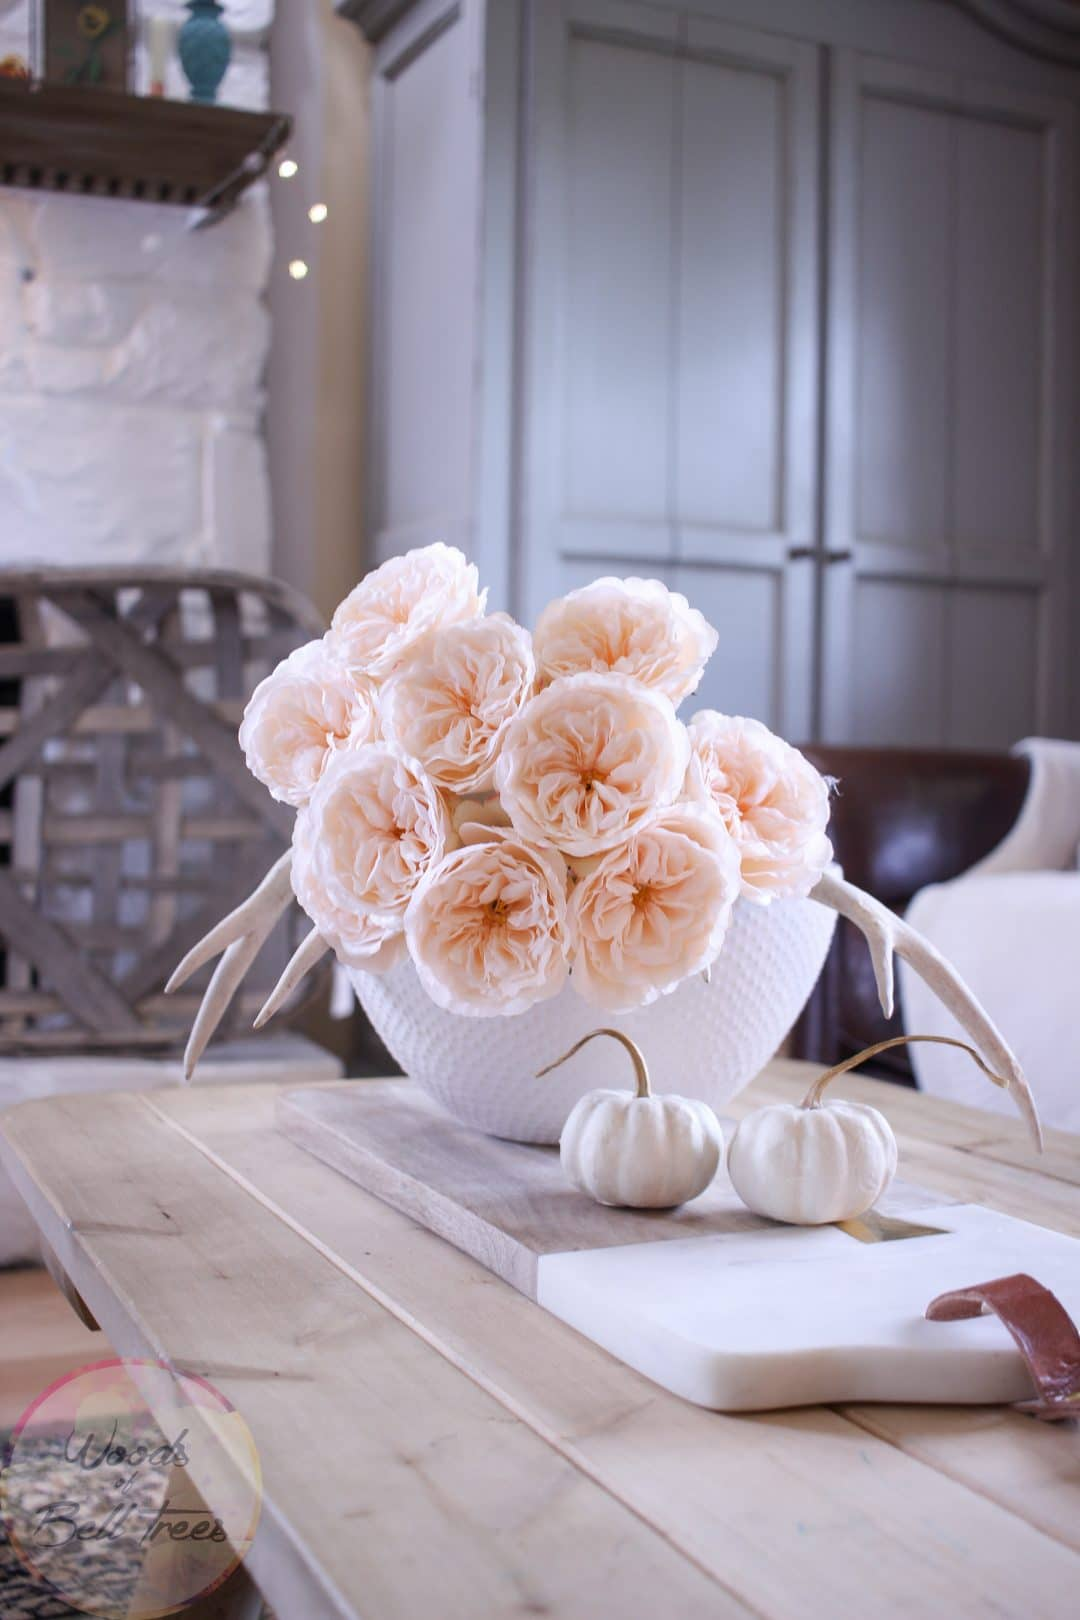 early-fall-decor-home-centerpiece-cabbage-roses-neutral-easy-handmade-decorating-diy-5-1080x1620